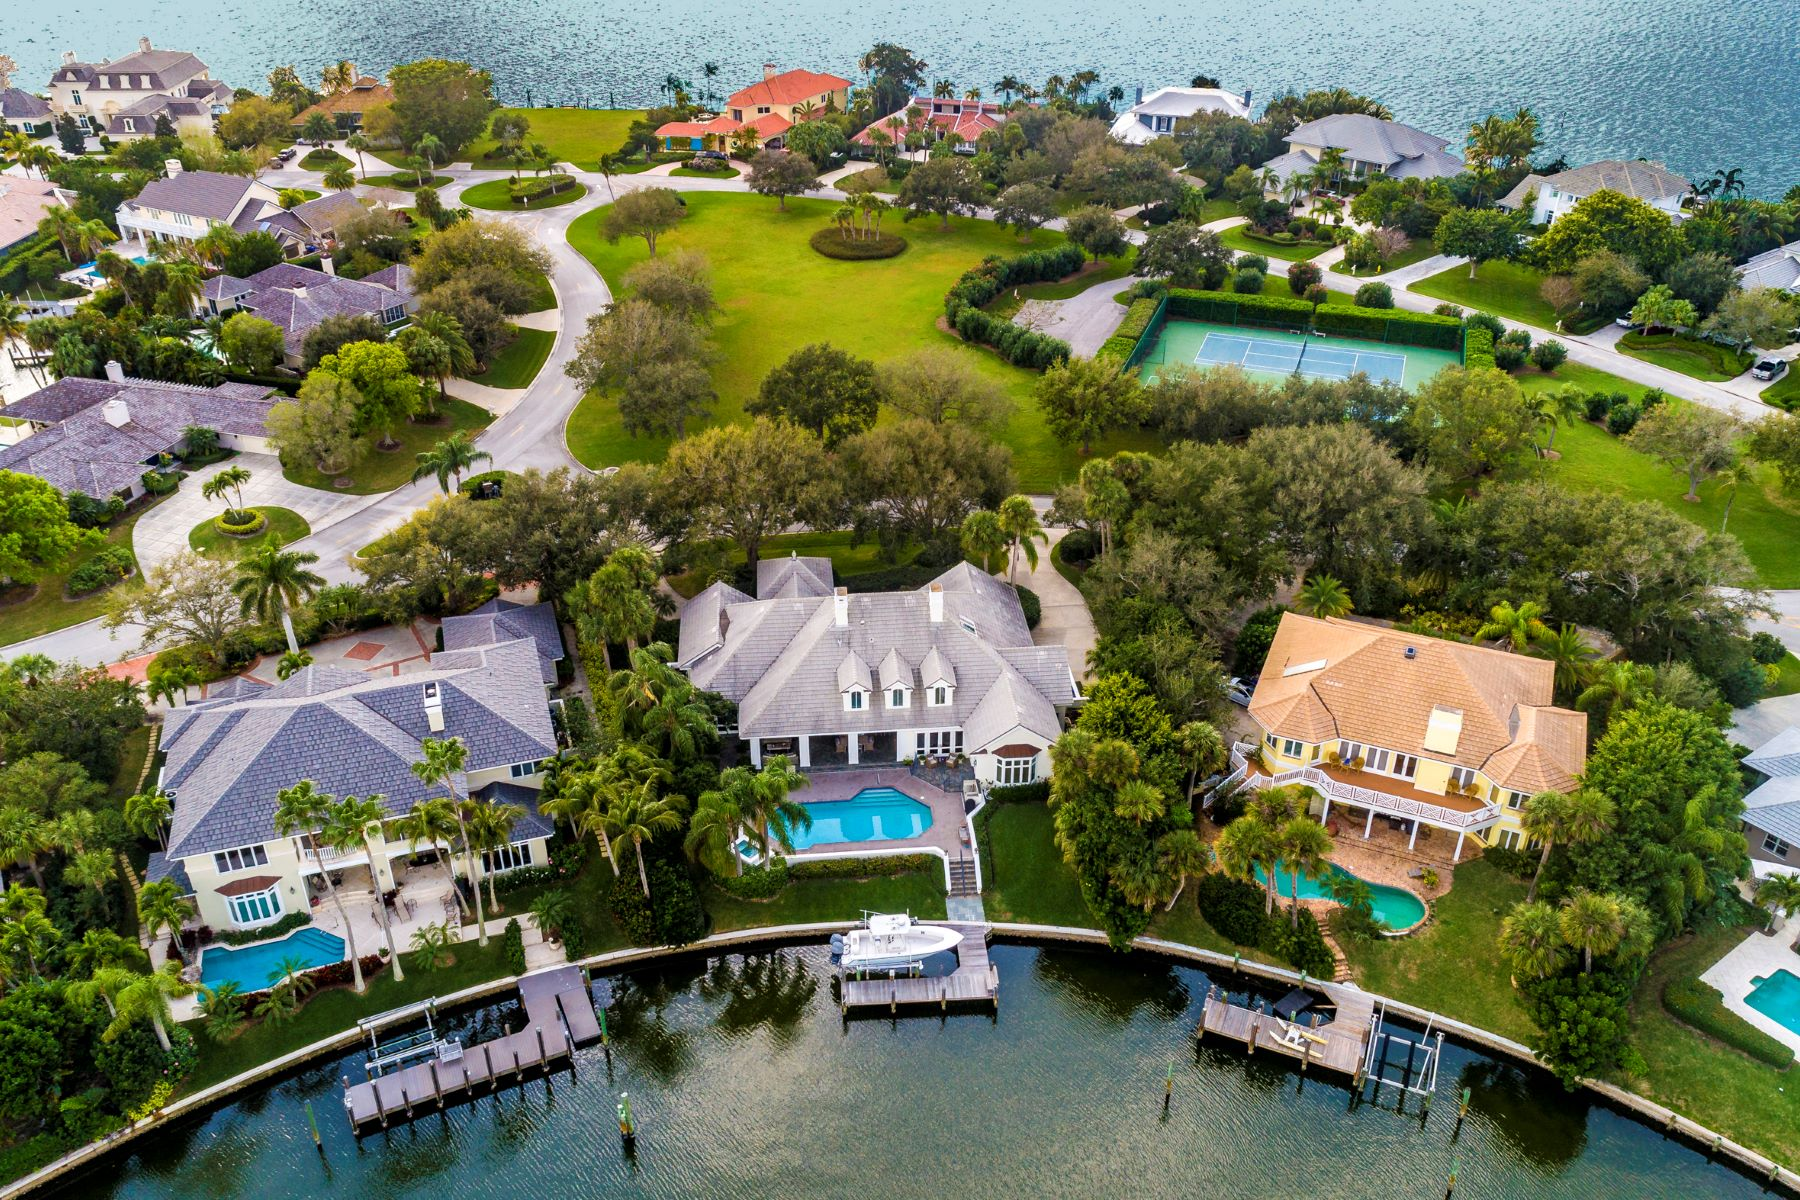 Single Family Homes for Sale at 170 Anchor Drive Vero Beach, Florida 32963 United States